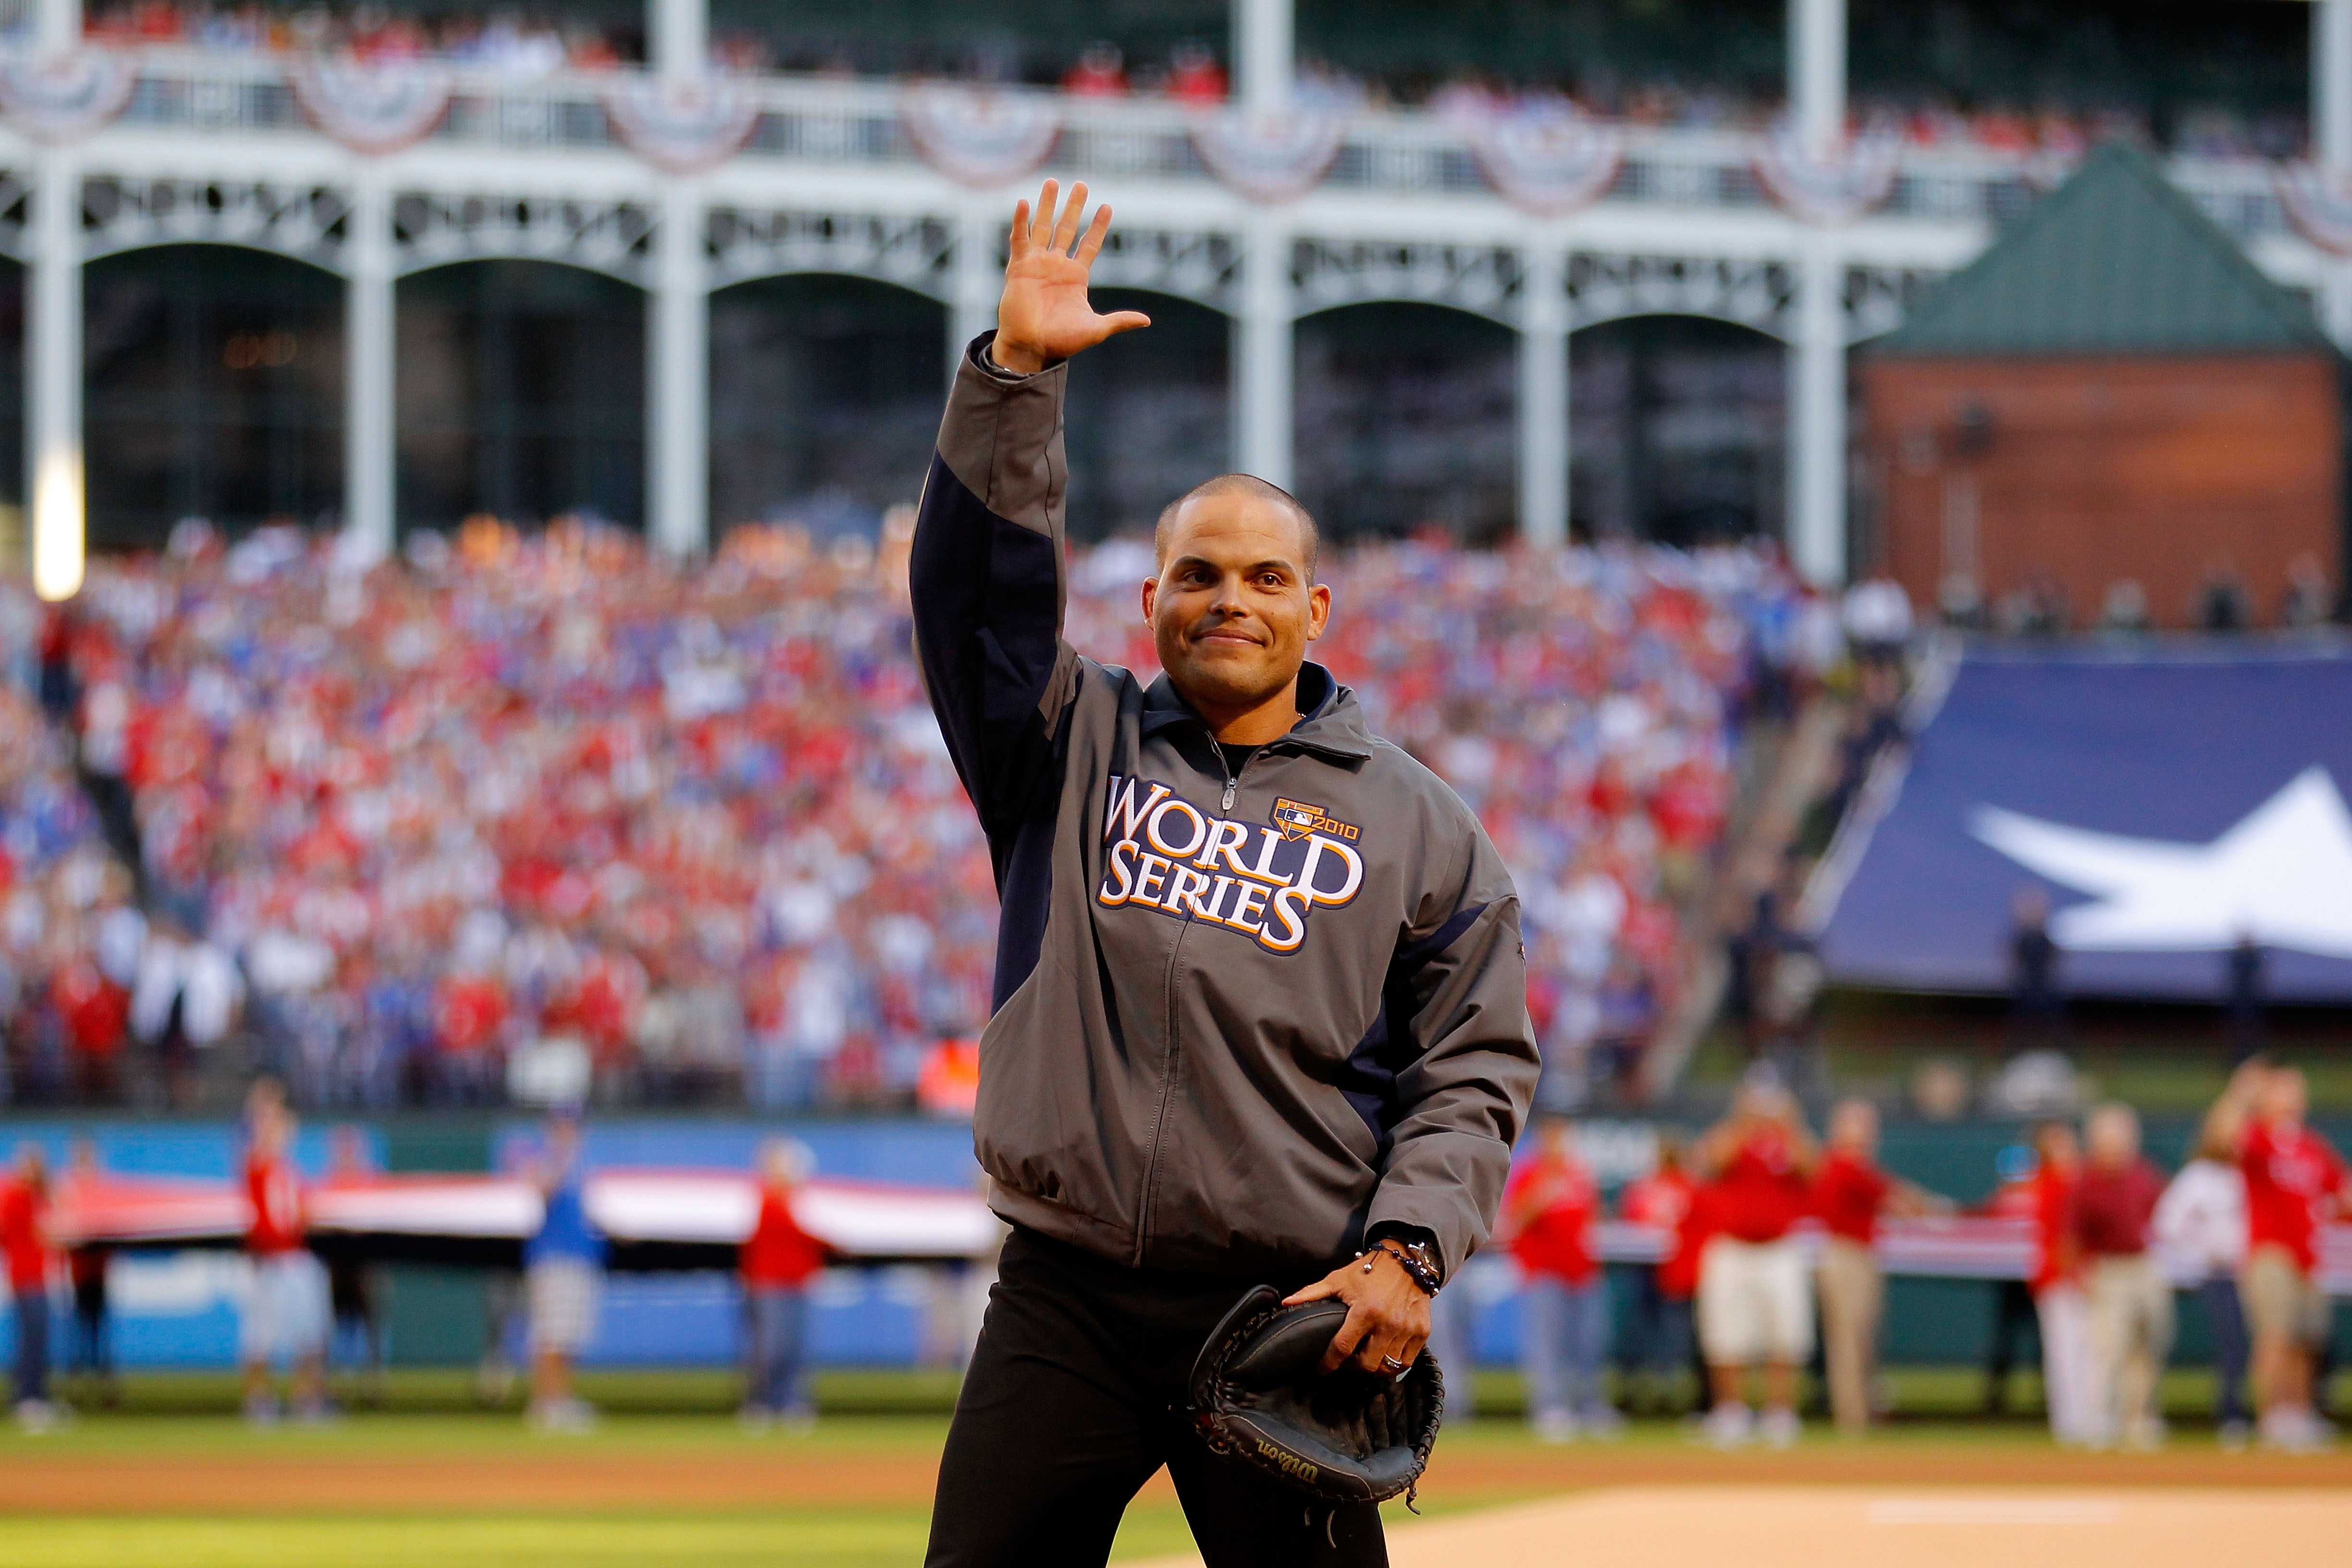 ARLINGTON, TX - OCTOBER 30: Former catcher for the Texas Rangers Ivan 'Pudge' Rodriguez waves to the fans as he walks out ot catch the cermonial firts pitch from Rangers team President Nolan Ryan against the San Francisco Giants in Game Three of the 2010